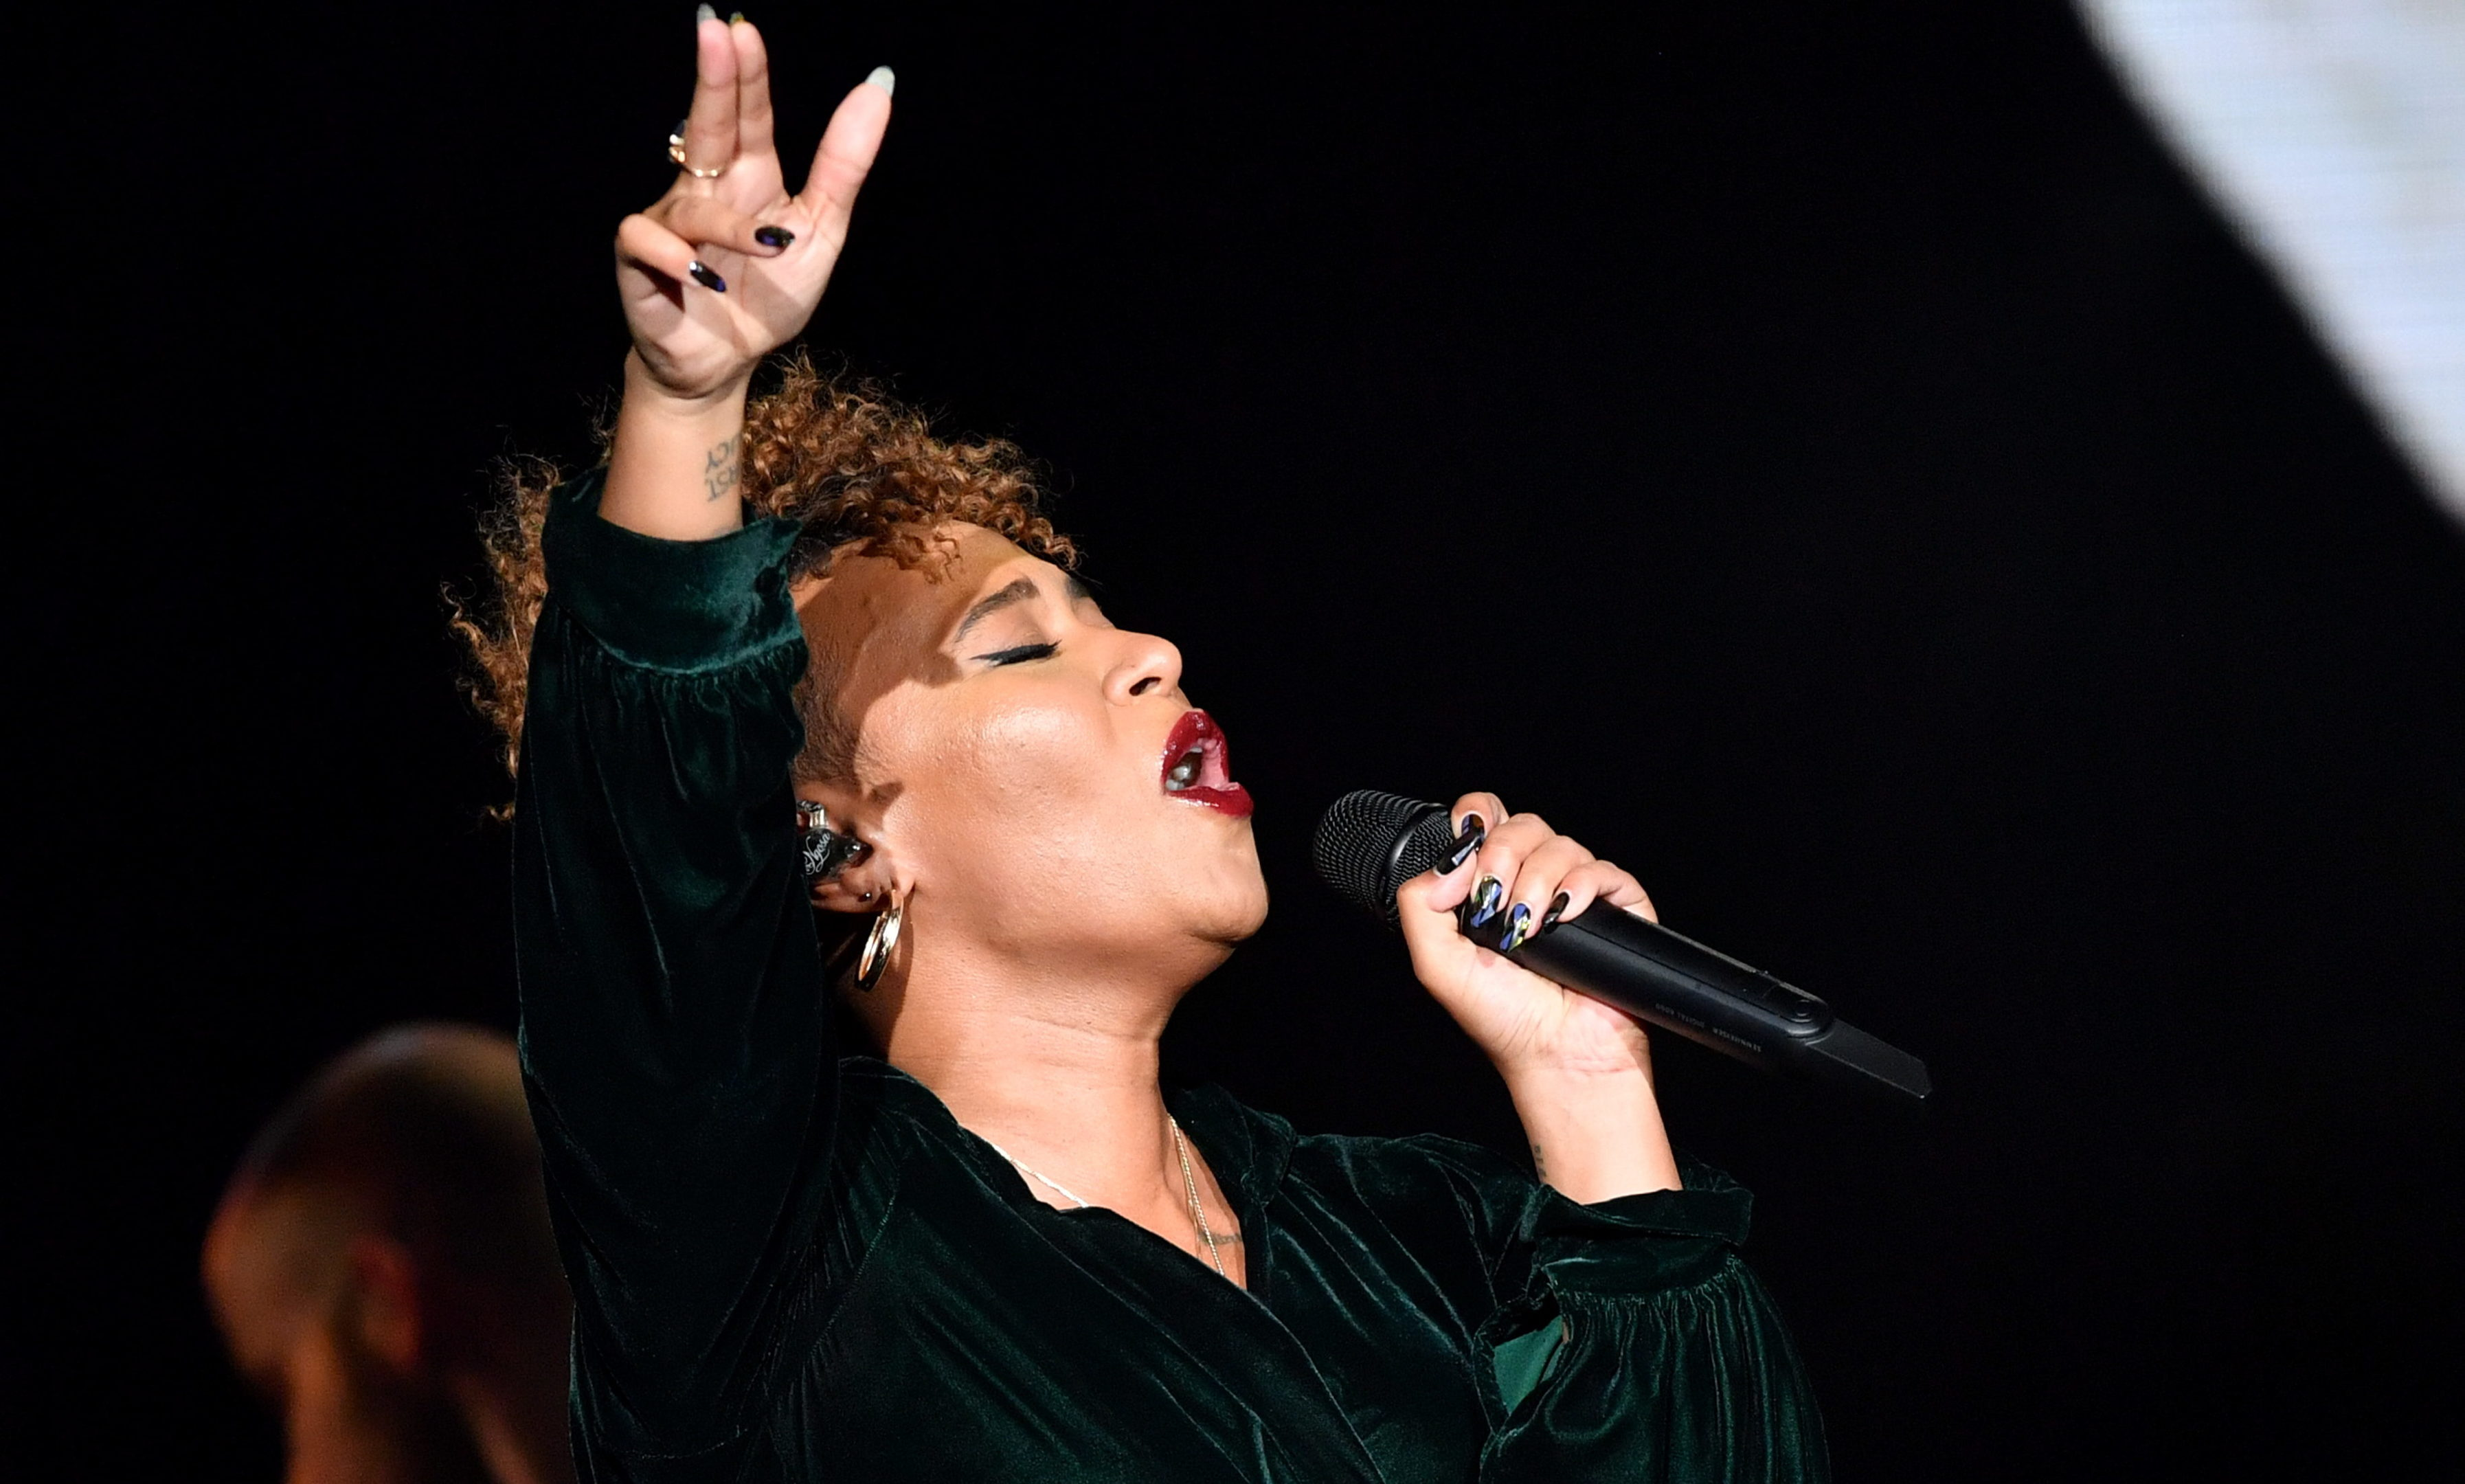 Emeli Sande, who will be performing at the Biggest Weekend in Scone Palace.